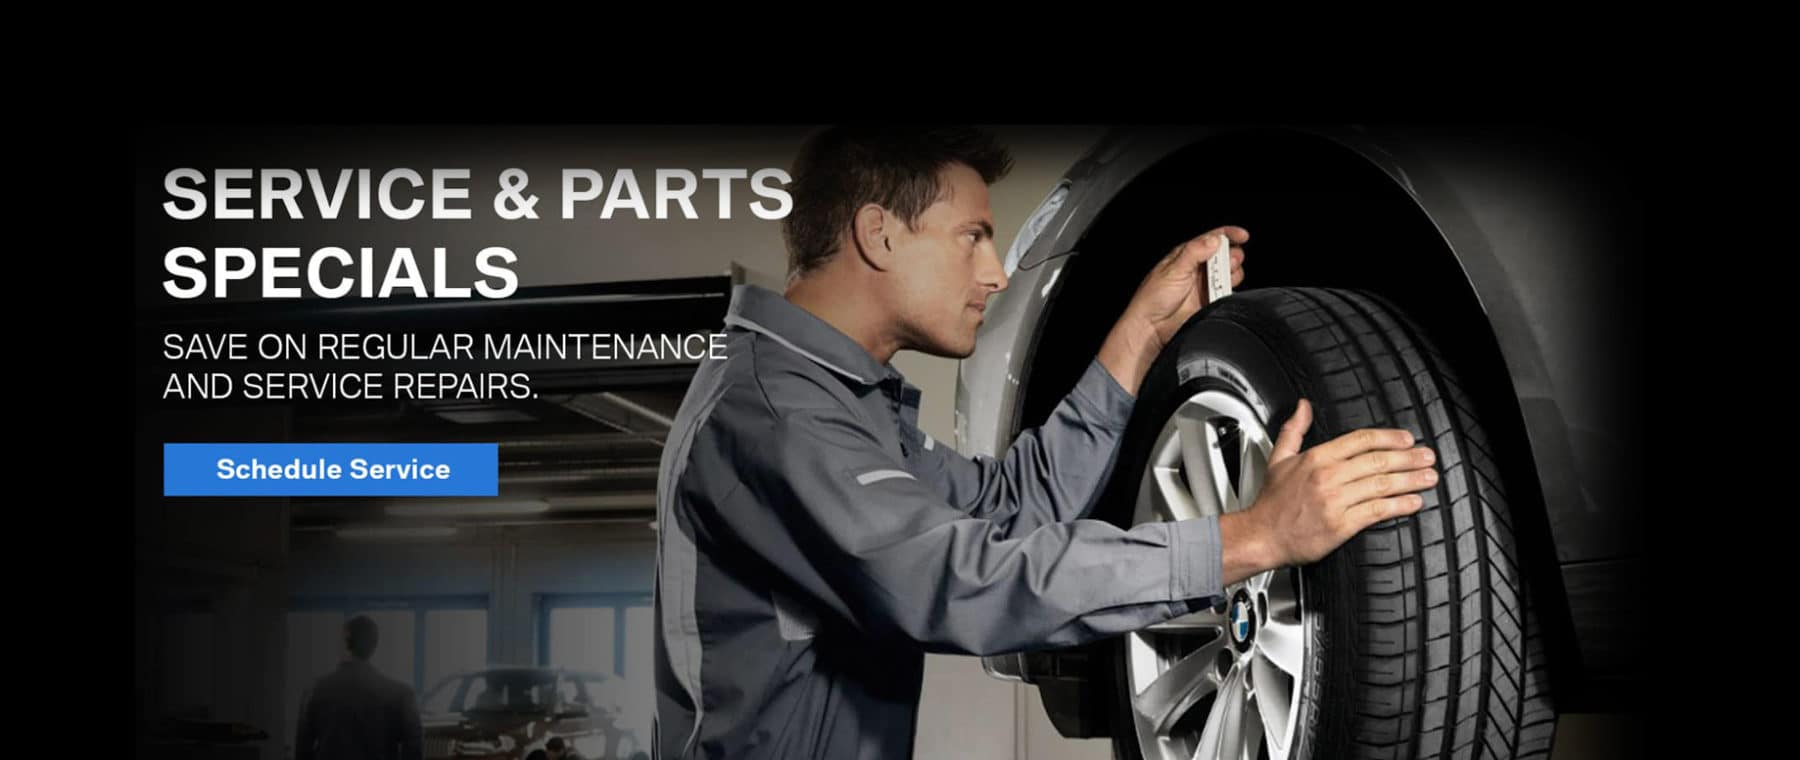 Service and Parts Specials